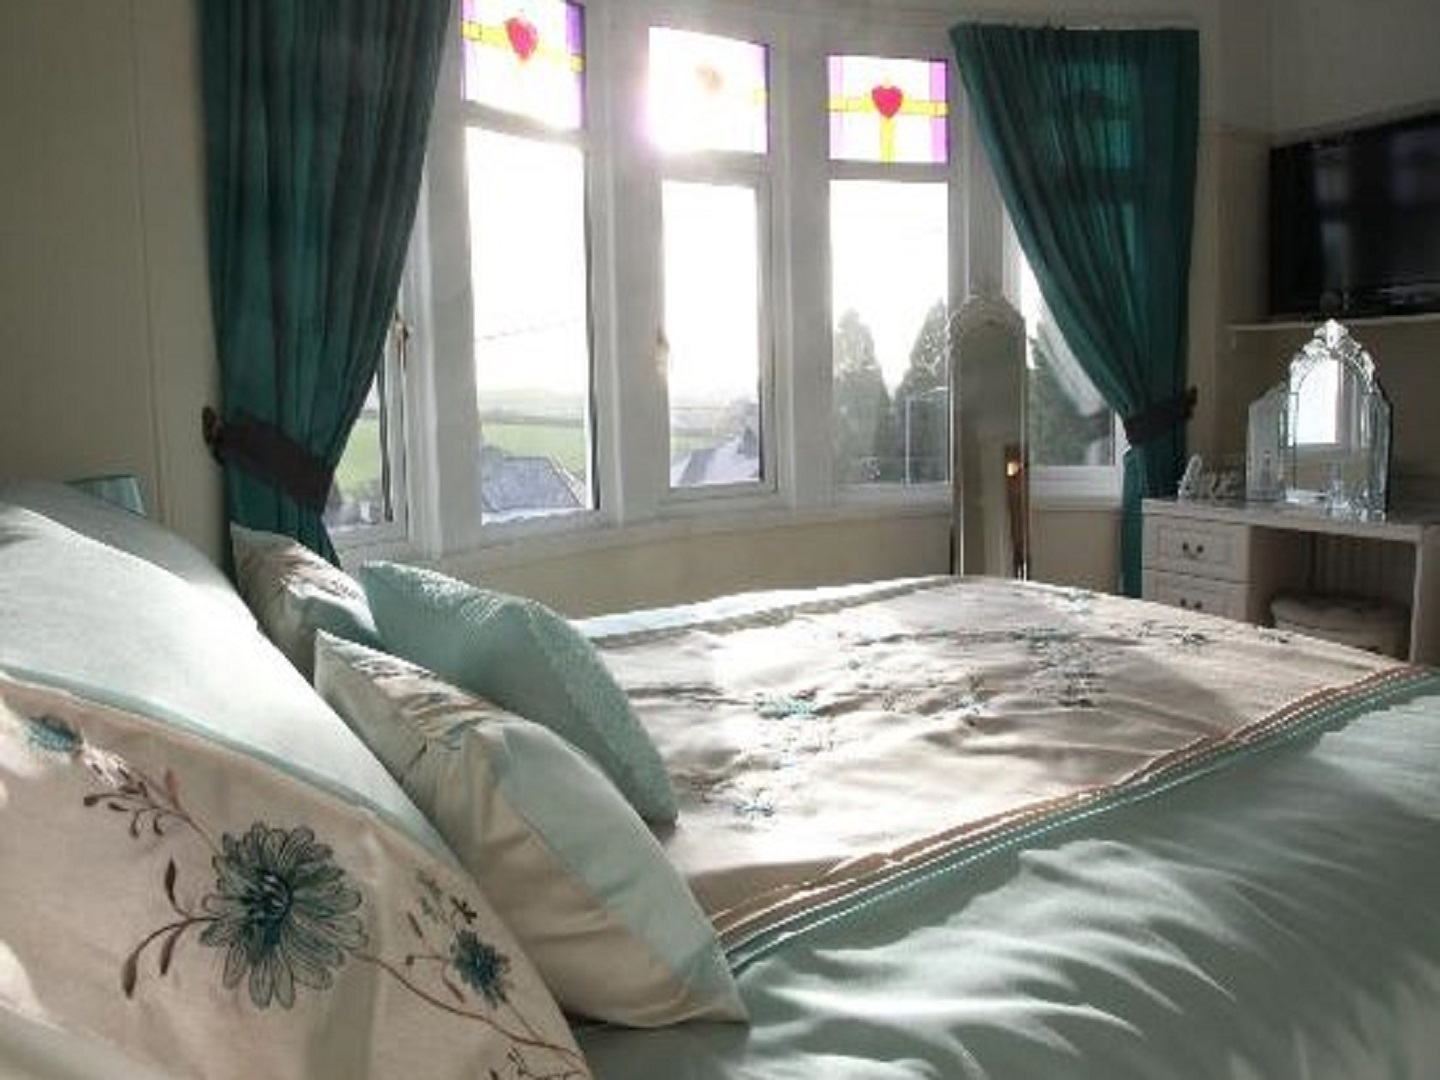 A bedroom with a bed and a window at Langdale House.